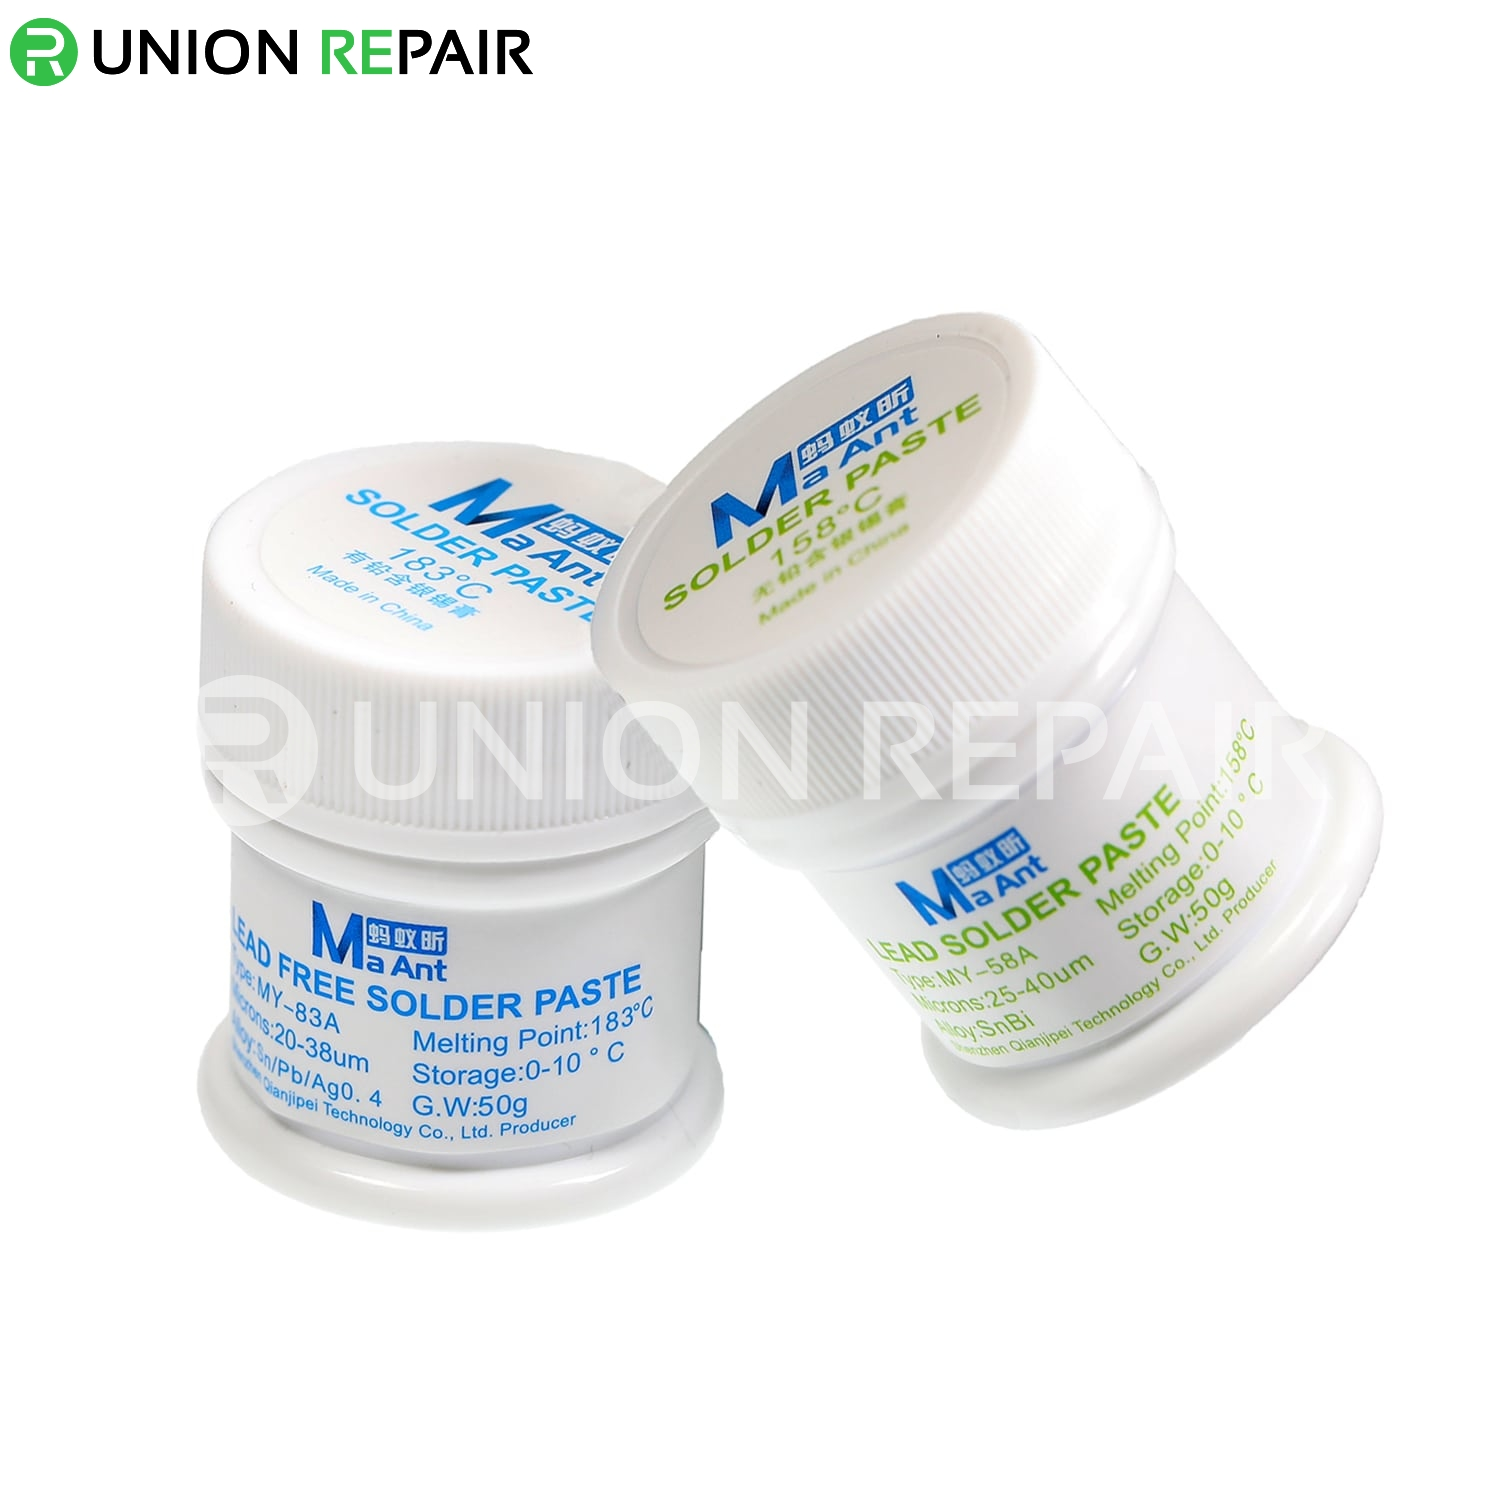 MaAnt Lead Free Solder Paste 158/183 Degree 50g